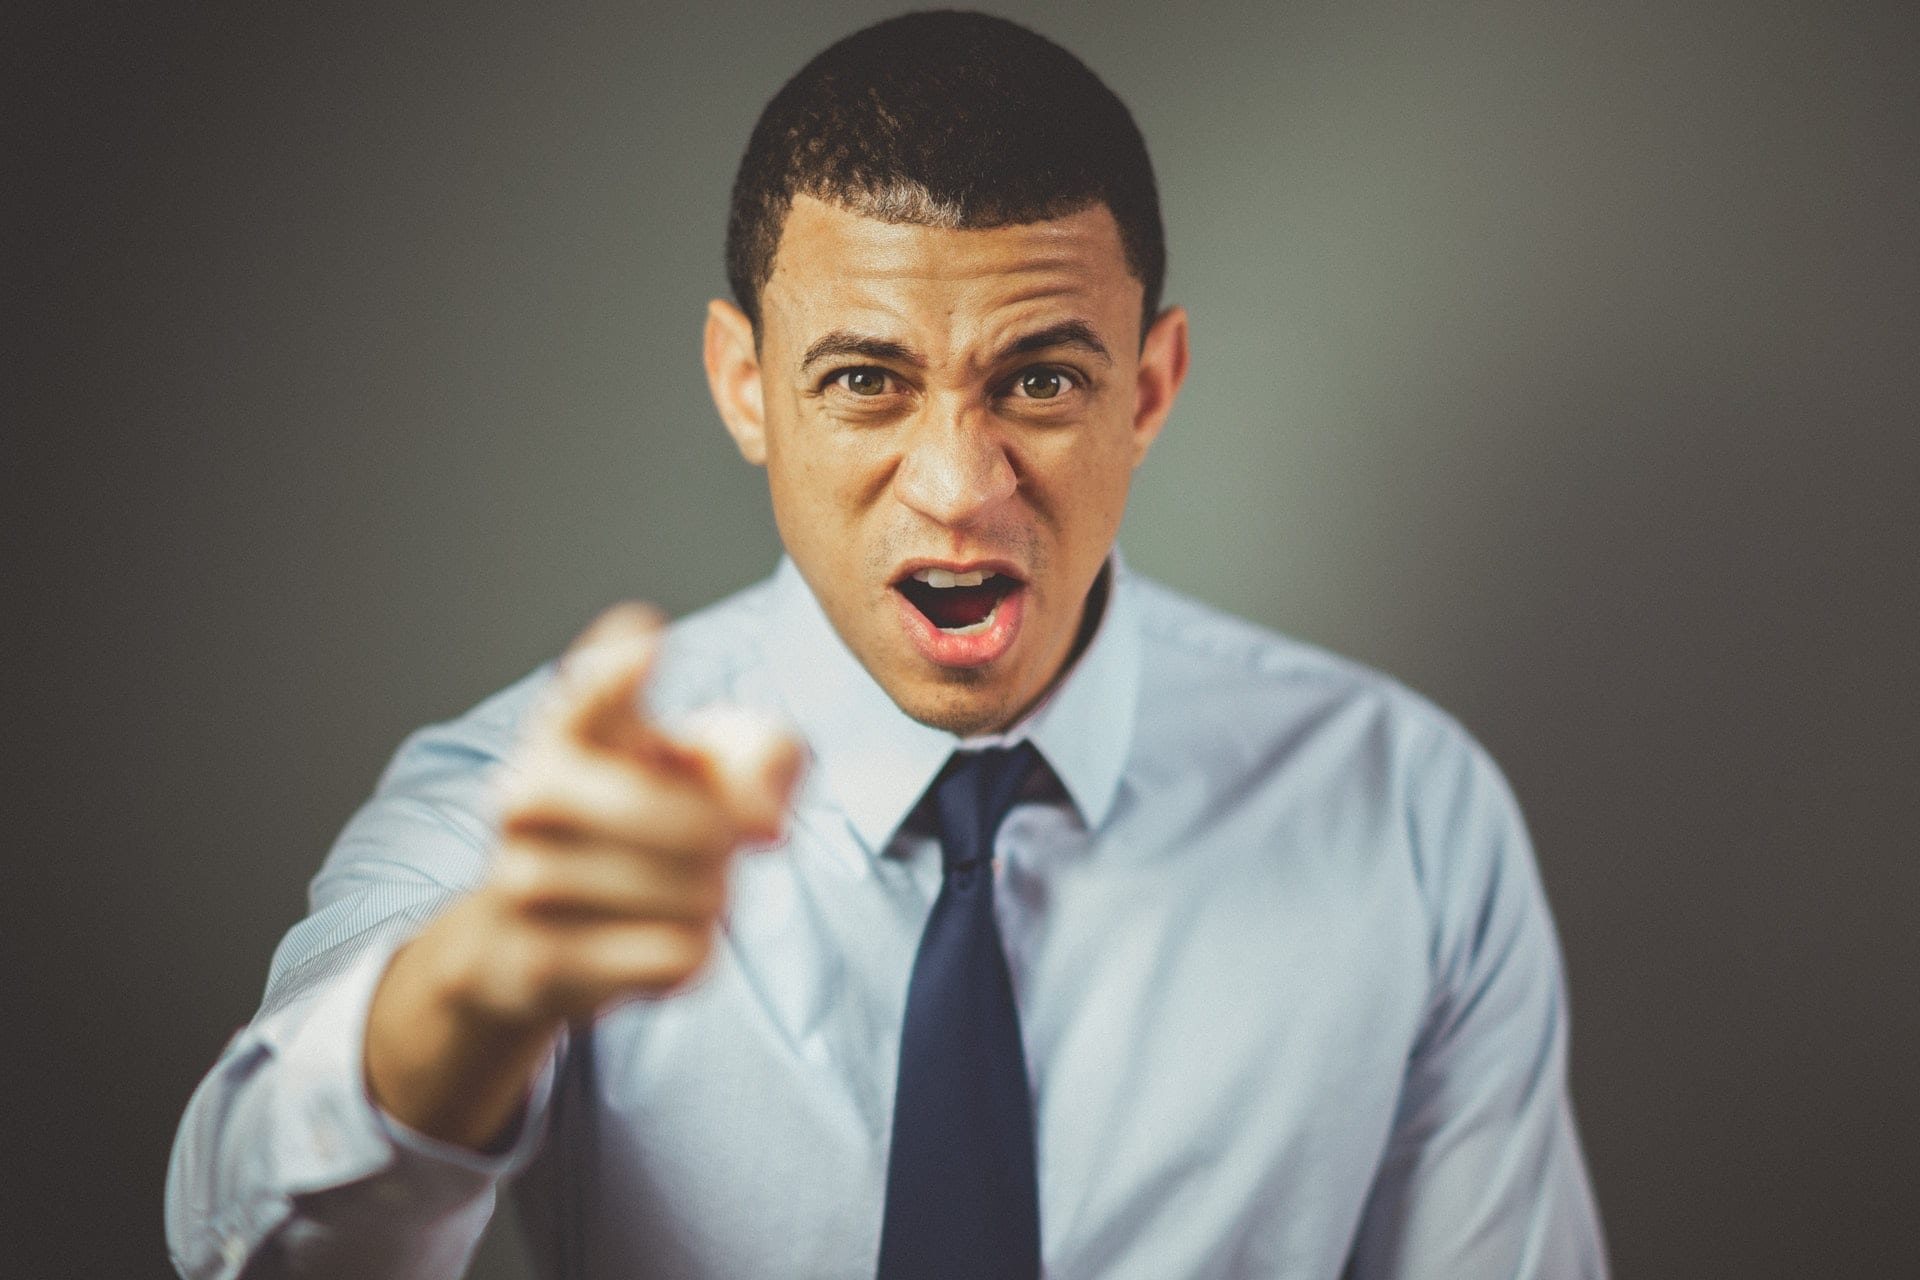 Bosses Suck! How to Overcome a Toxic Workplace